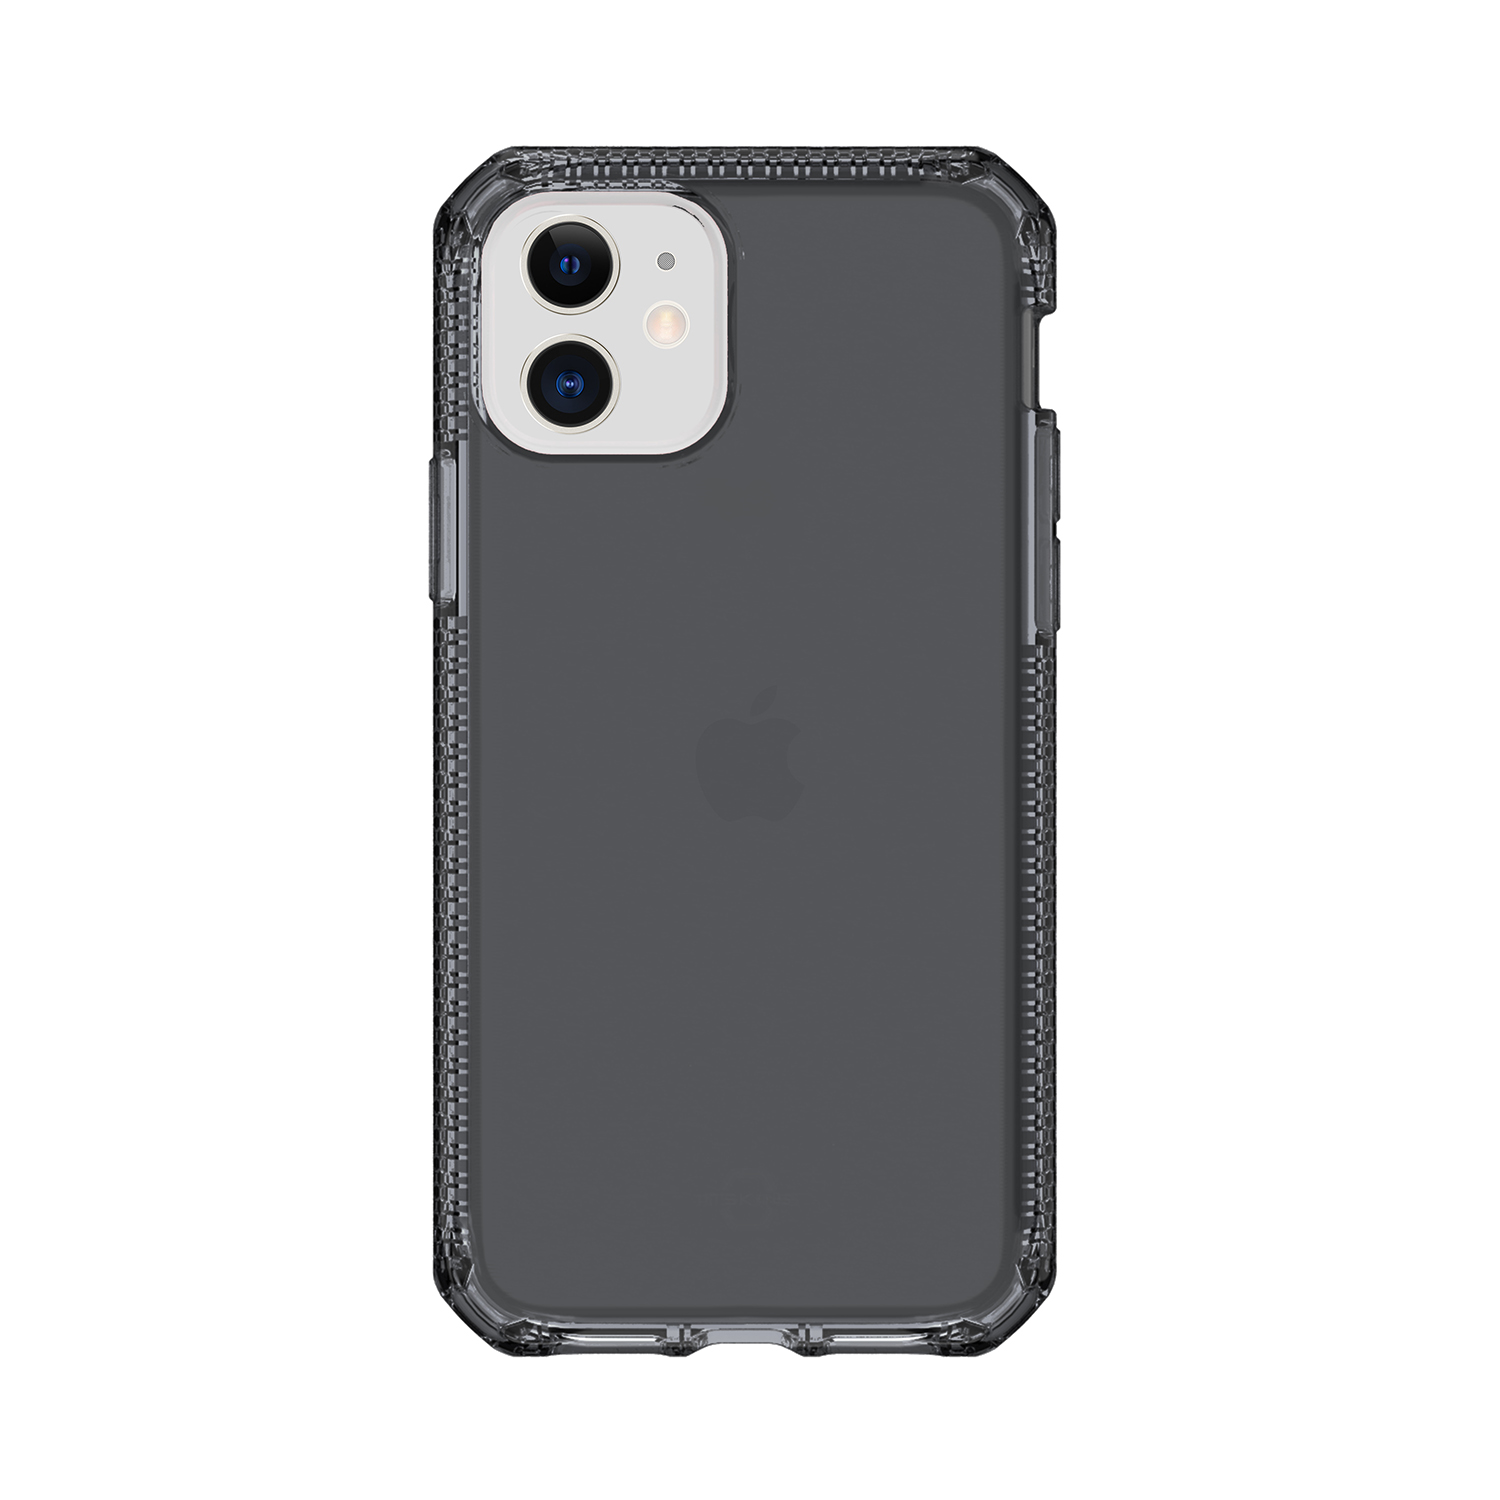 ITSKINS SPECTRUMCLEAR Case for iPhone 11, 11 Pro & 11 Pro Max